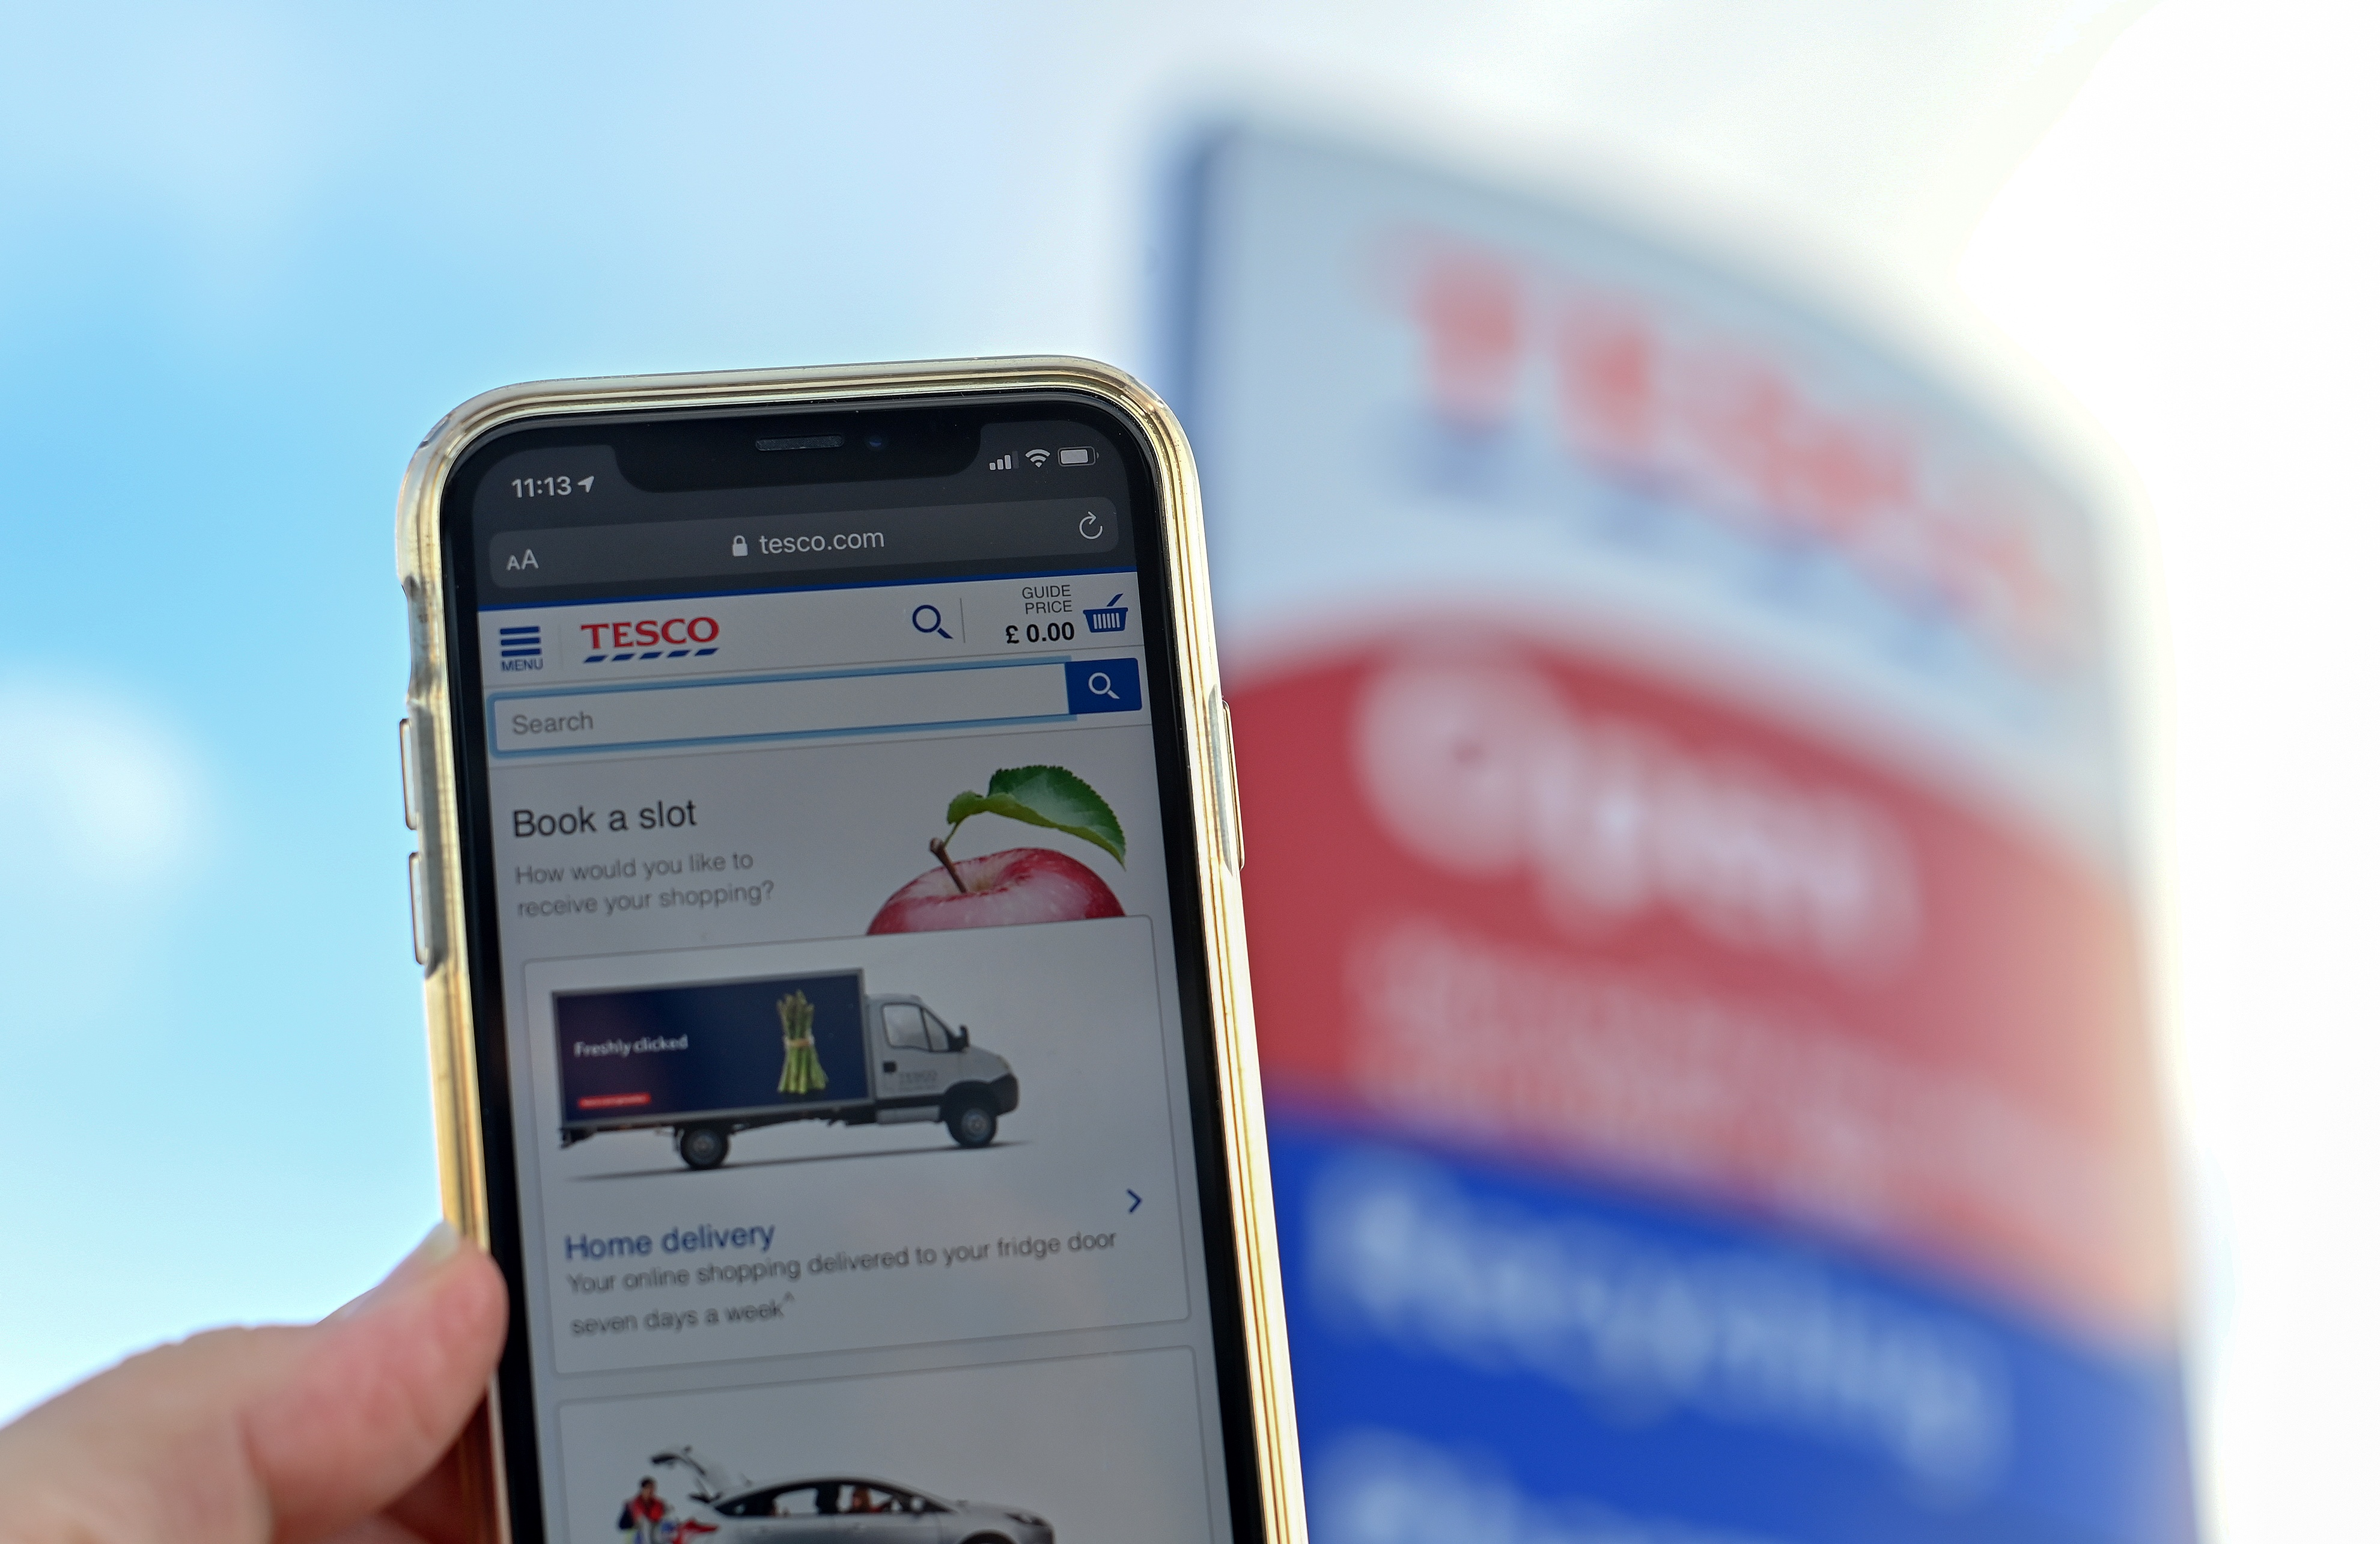 Tesco Cyber Monday deals: Huge savings on technology, kitchen appliances and more   GoodtoKnow